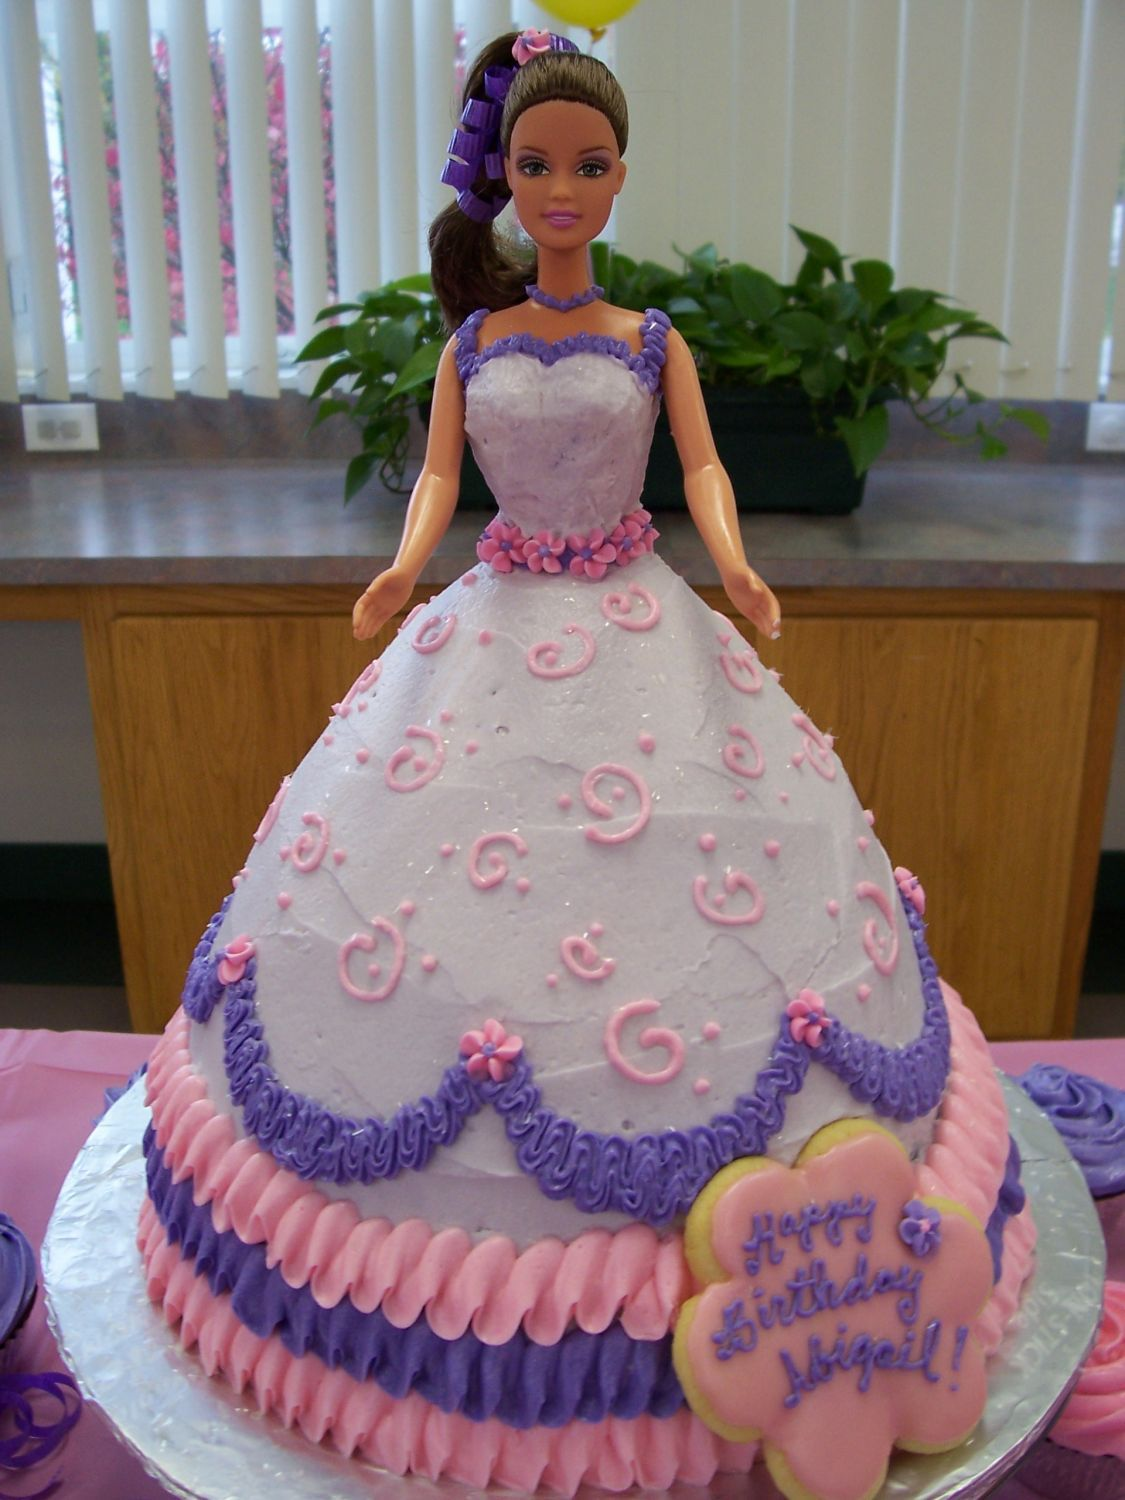 Barbie cake wonder mold cake stacked on 8 in round its